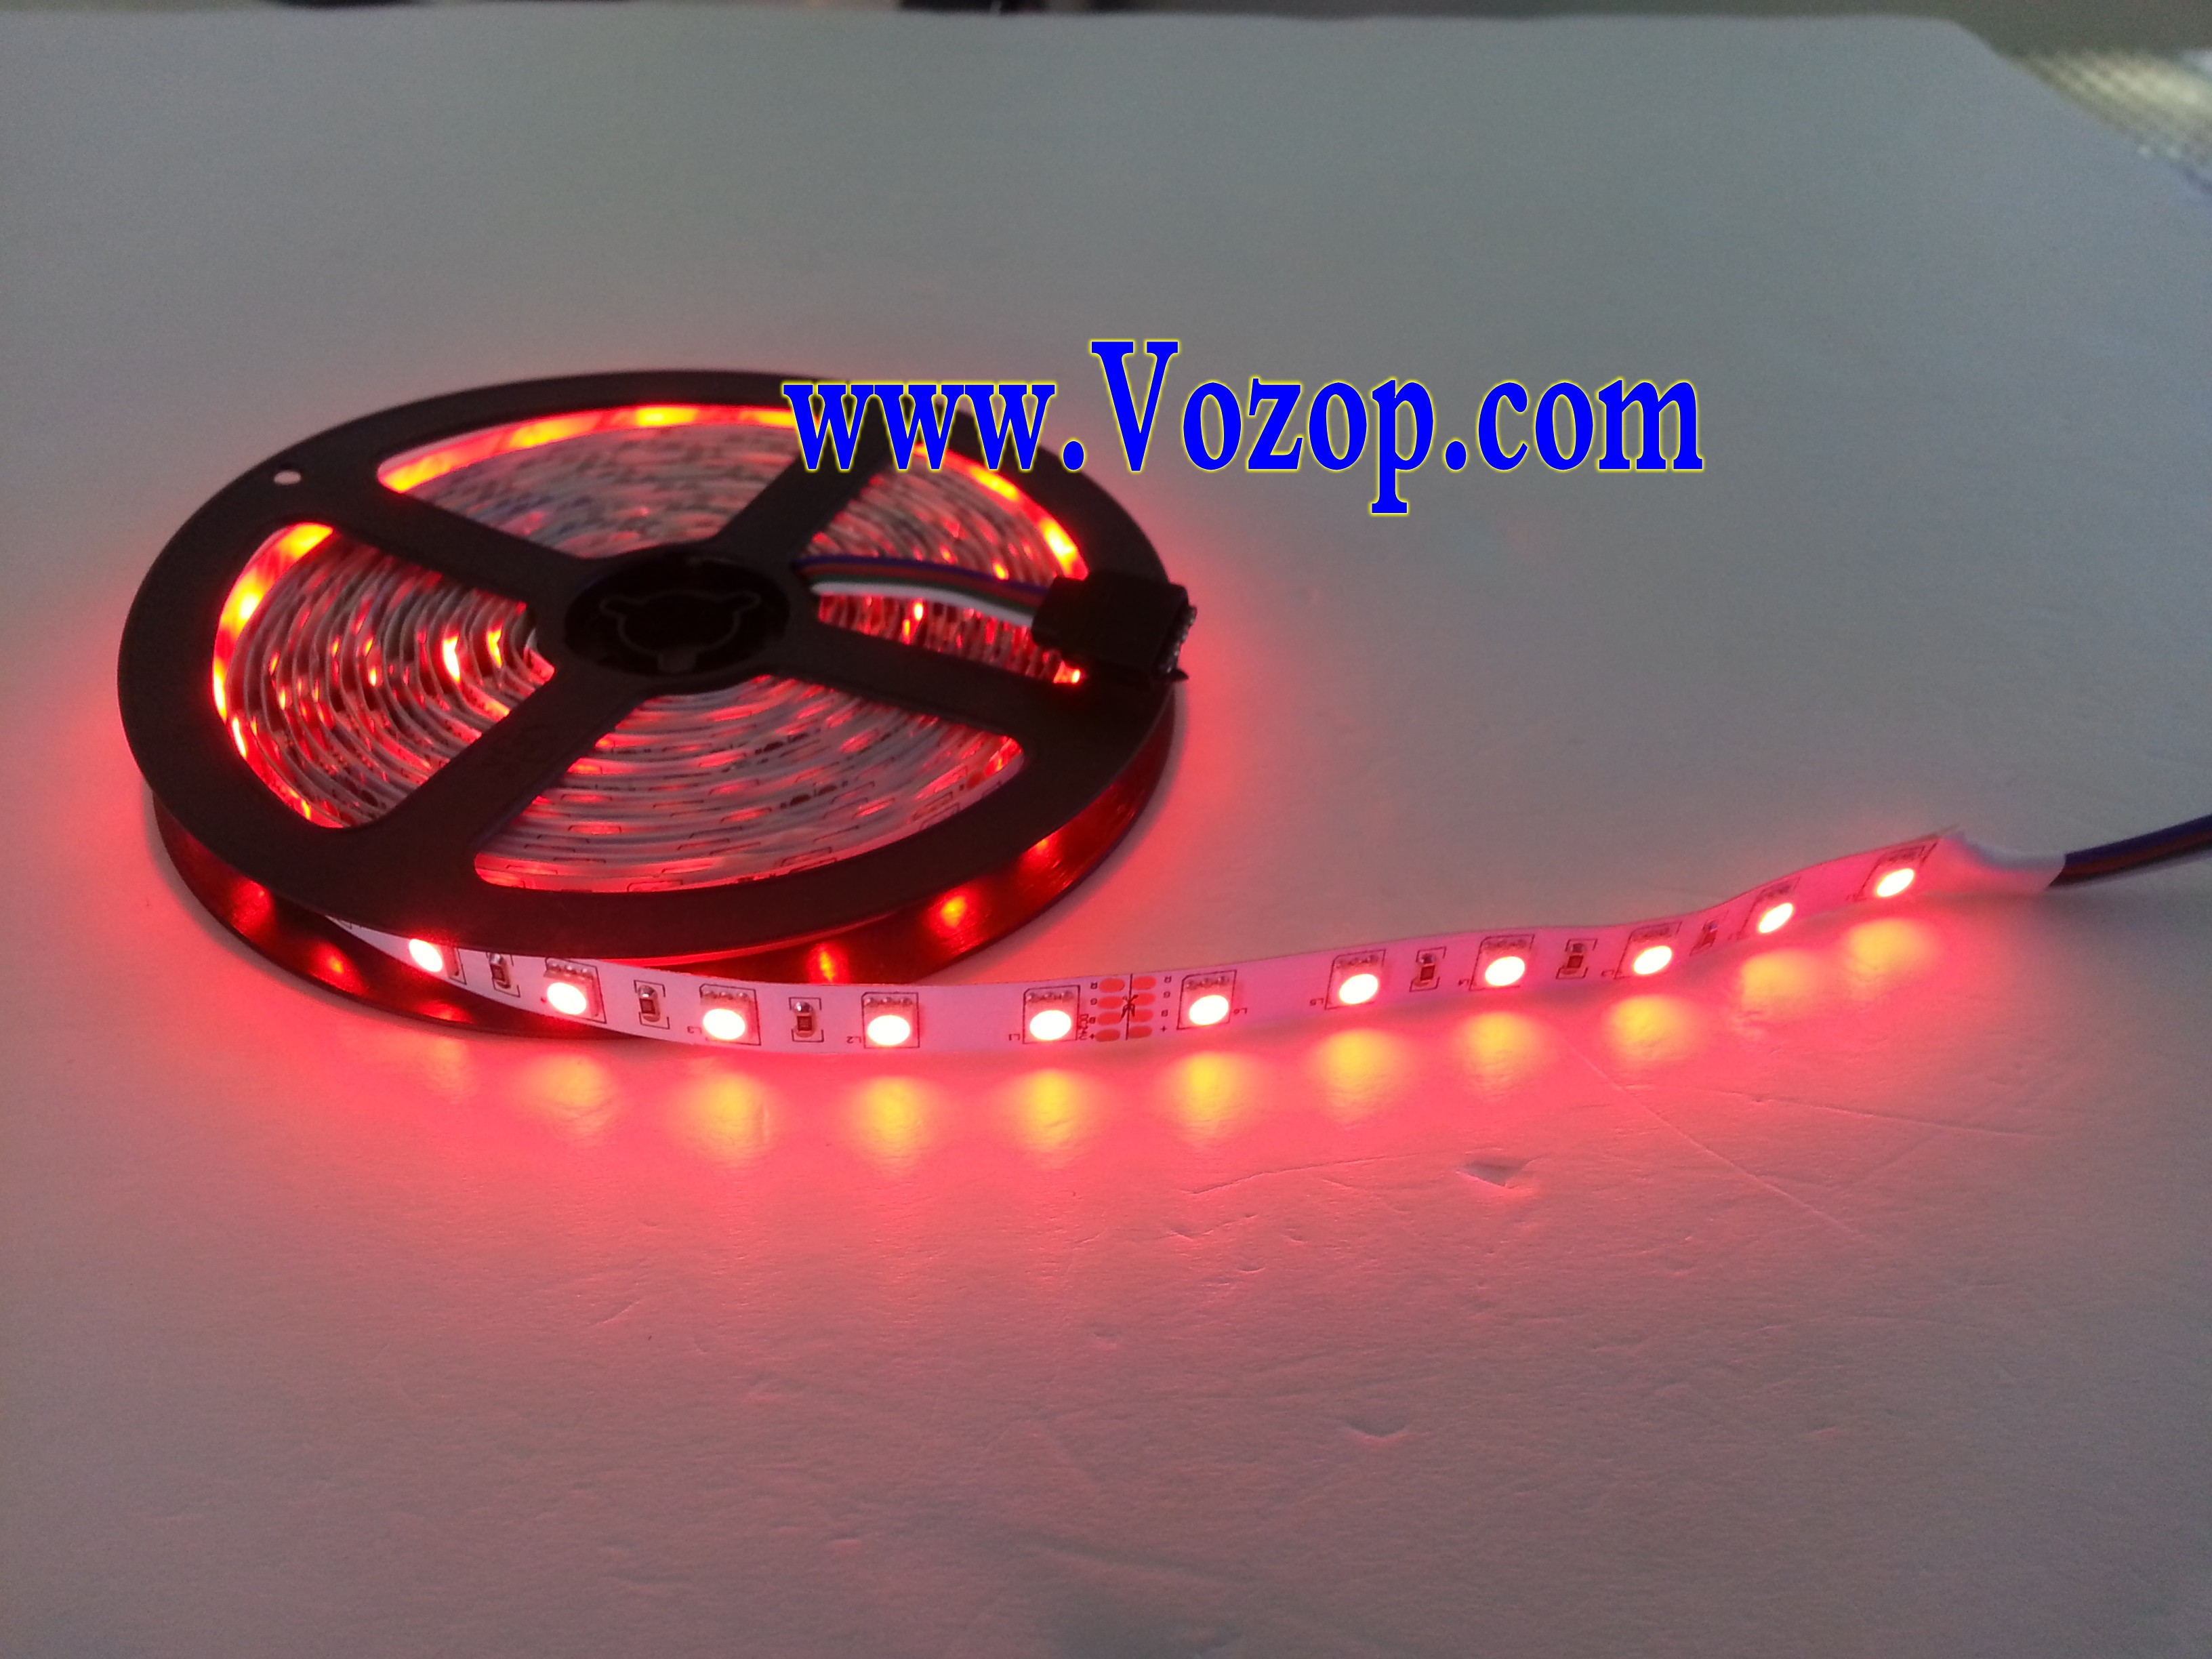 24v rgb led strip 5m 300 leds smd5050 non waterproof light led strips led controllers led. Black Bedroom Furniture Sets. Home Design Ideas